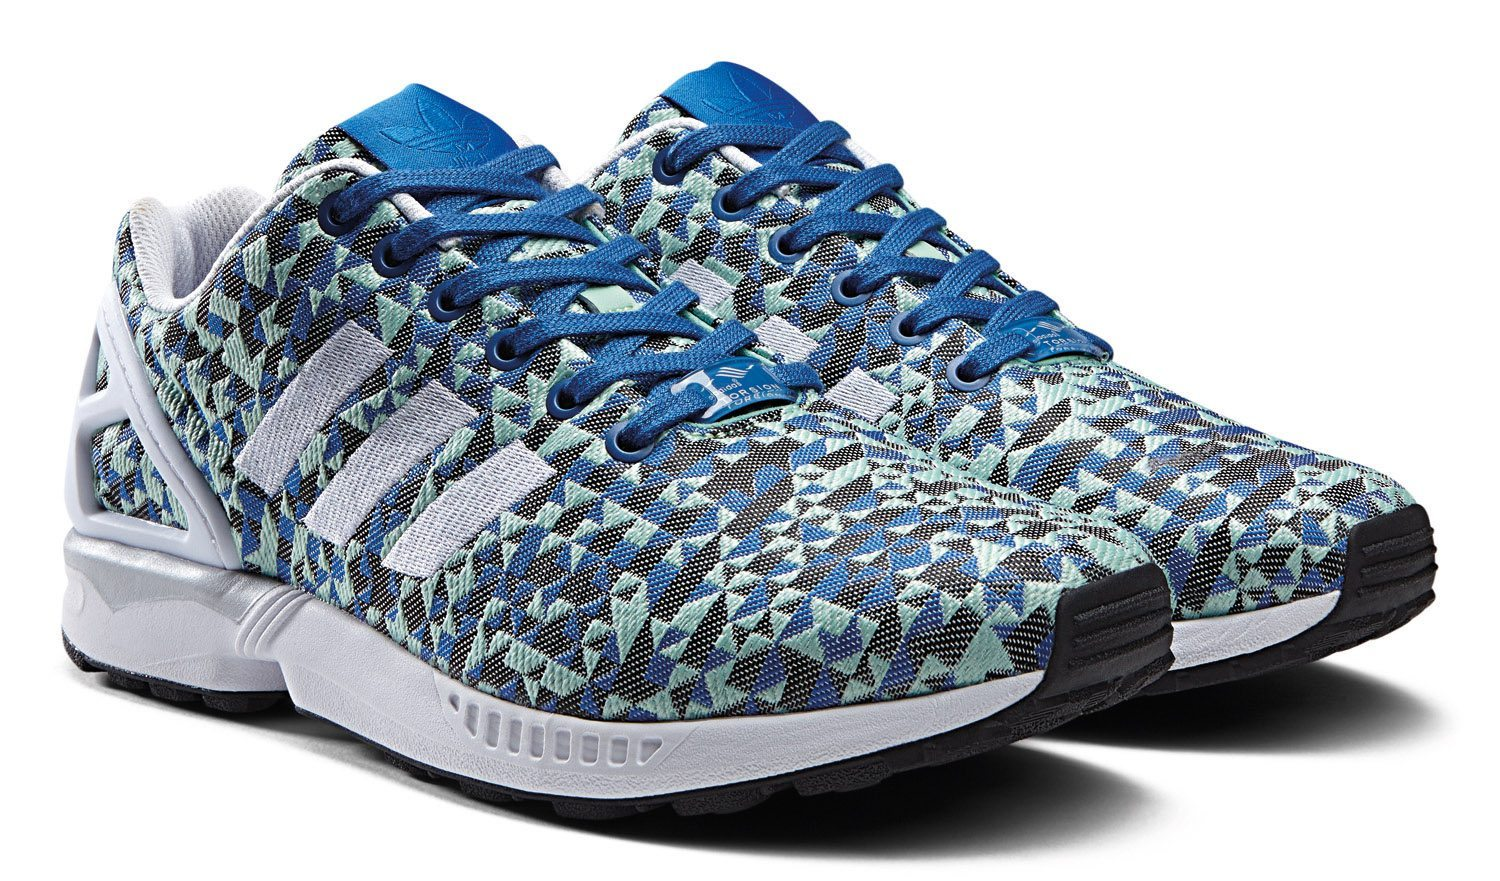 adidas Originals ZX FLUX Prism Weave Pack 3